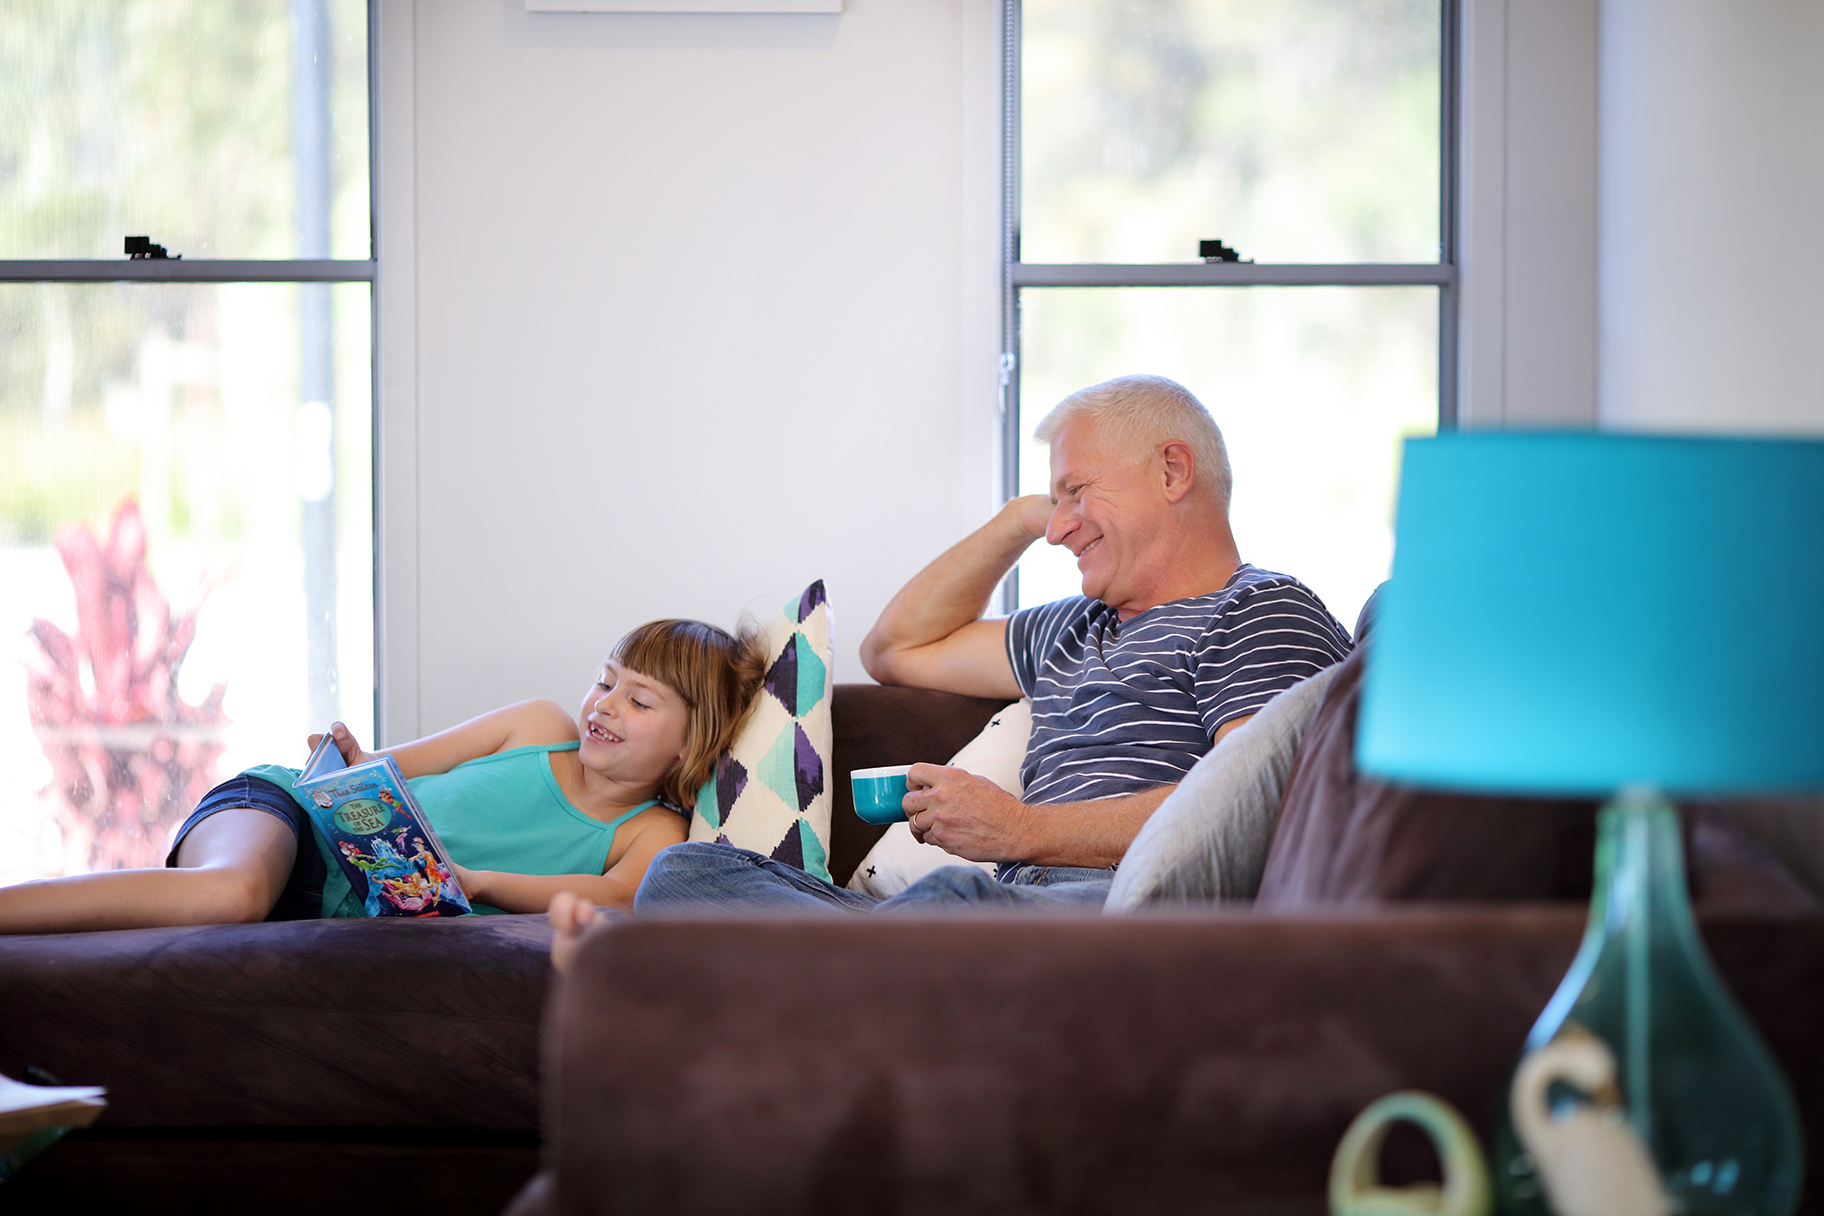 Man drinking tea and young girl reading book on couch